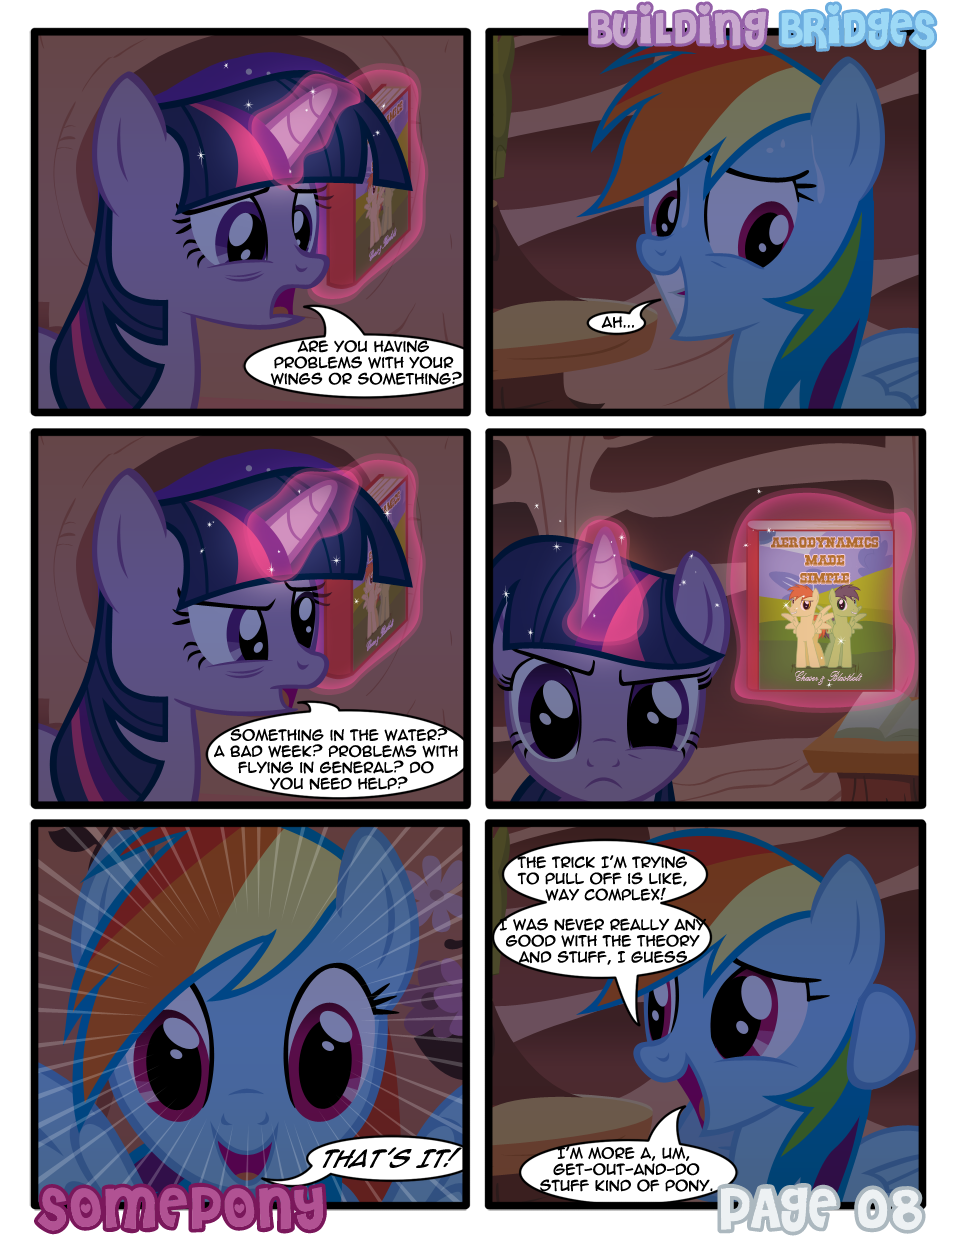 Building Bridges - Page 08 by Somepony